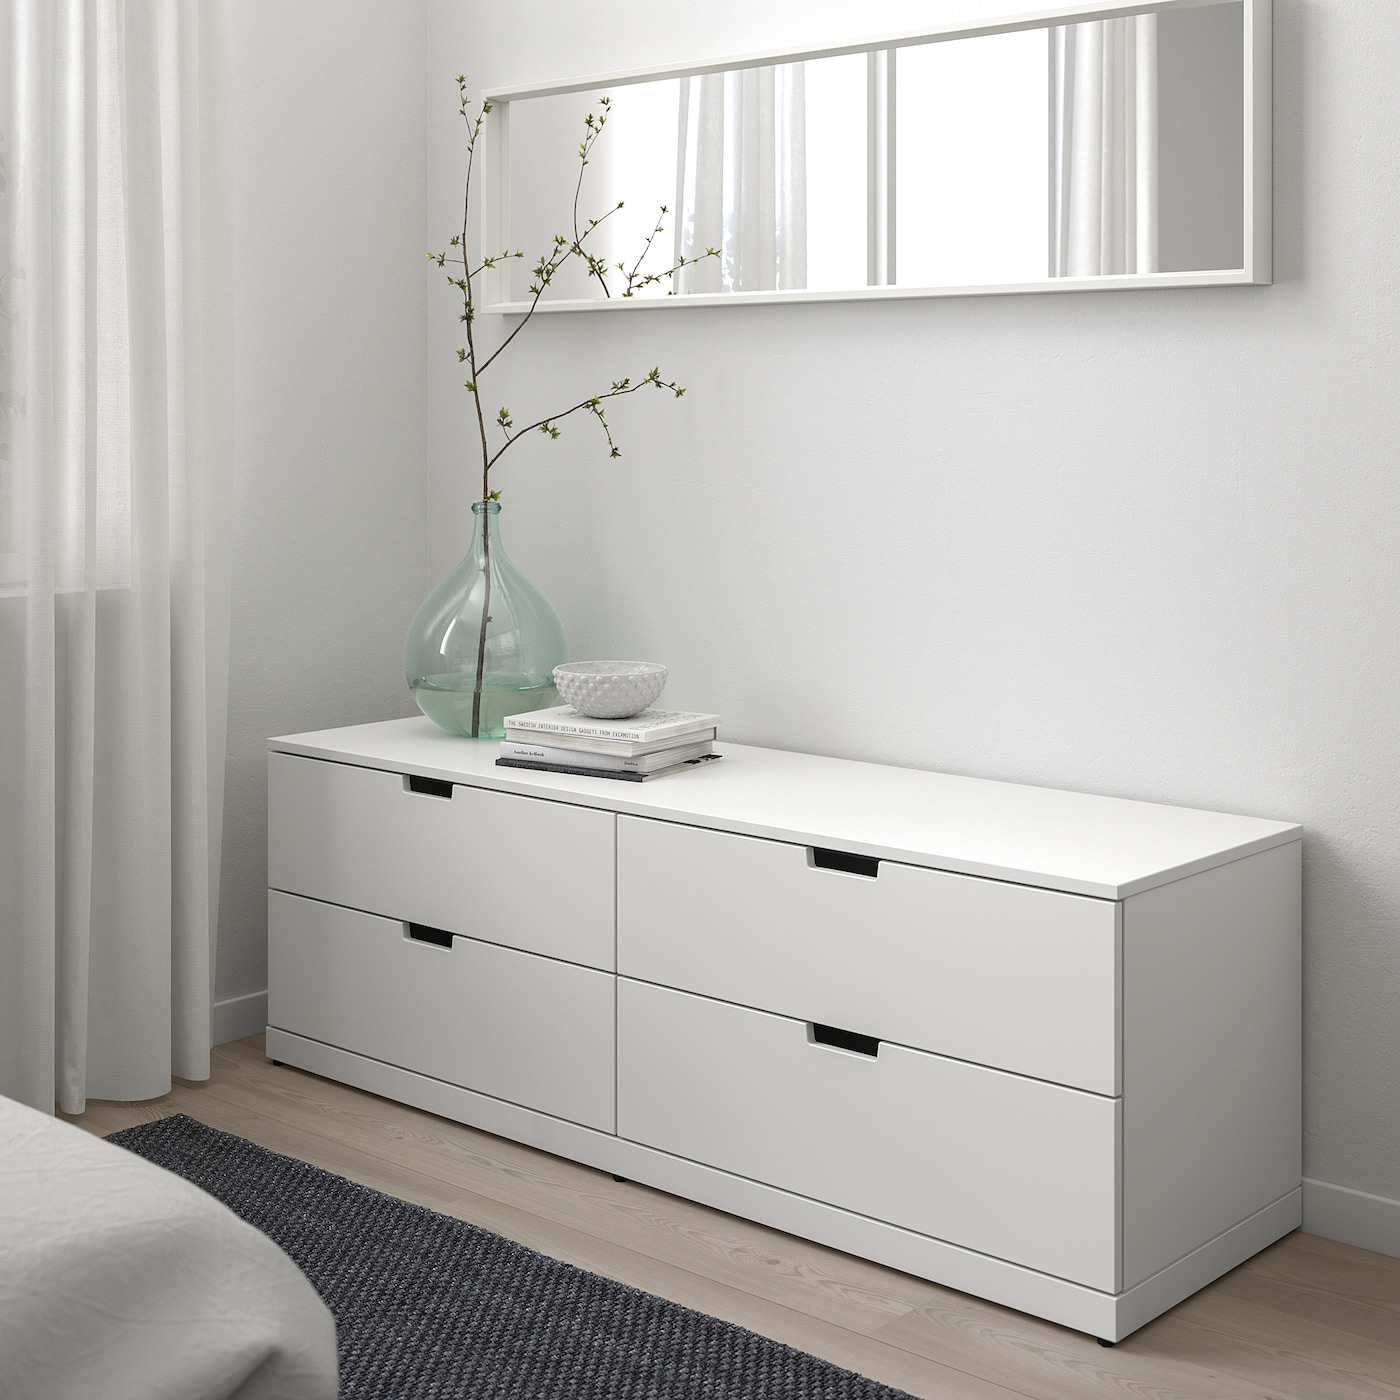 Chest of 4 drawers, 160x54 cm IKEA